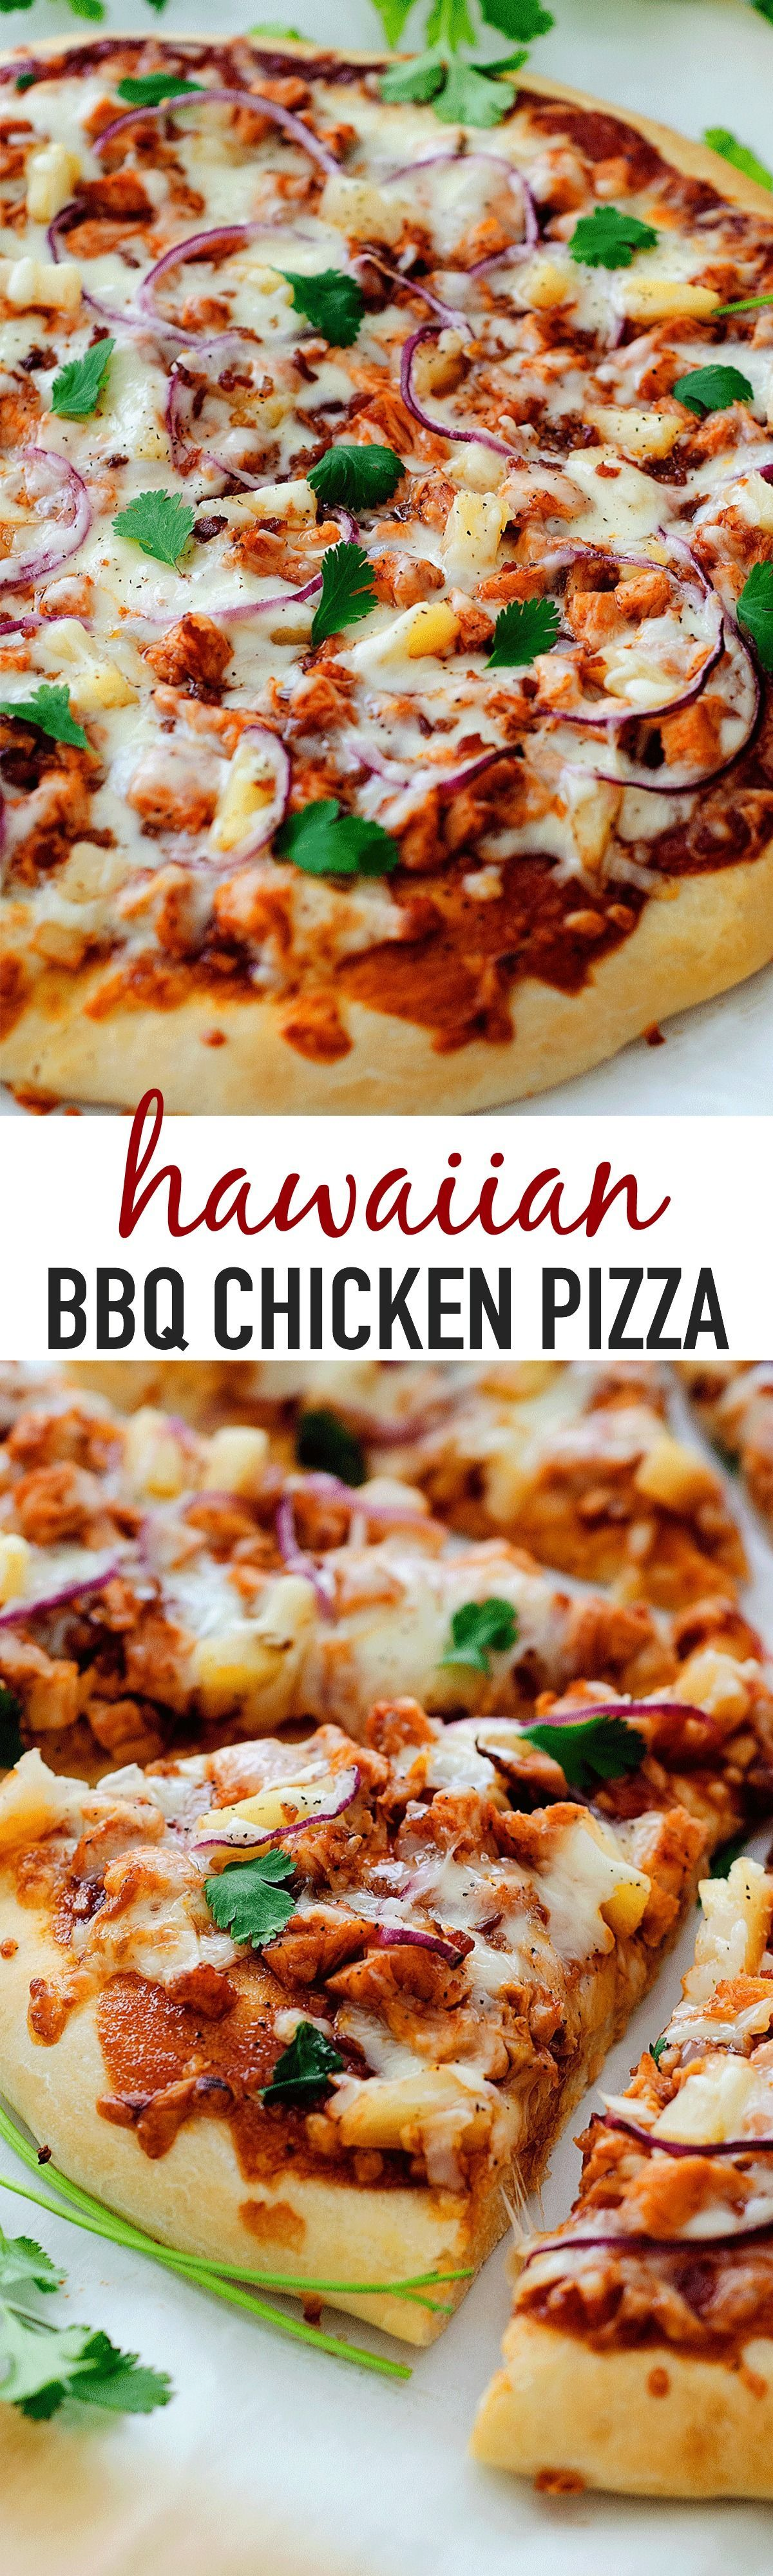 Hawaiian BBQ Chicken Pizza is my family's favorite! I use our tried and true HOMEMADE PIZZA DOUGH and pile on all the toppings. Barbecue sauce, chicken, mozzarella cheese and a few more goodies that make this pie outstanding. We have a pizza night almost once a week at our house. Usually on Friday... Read More »